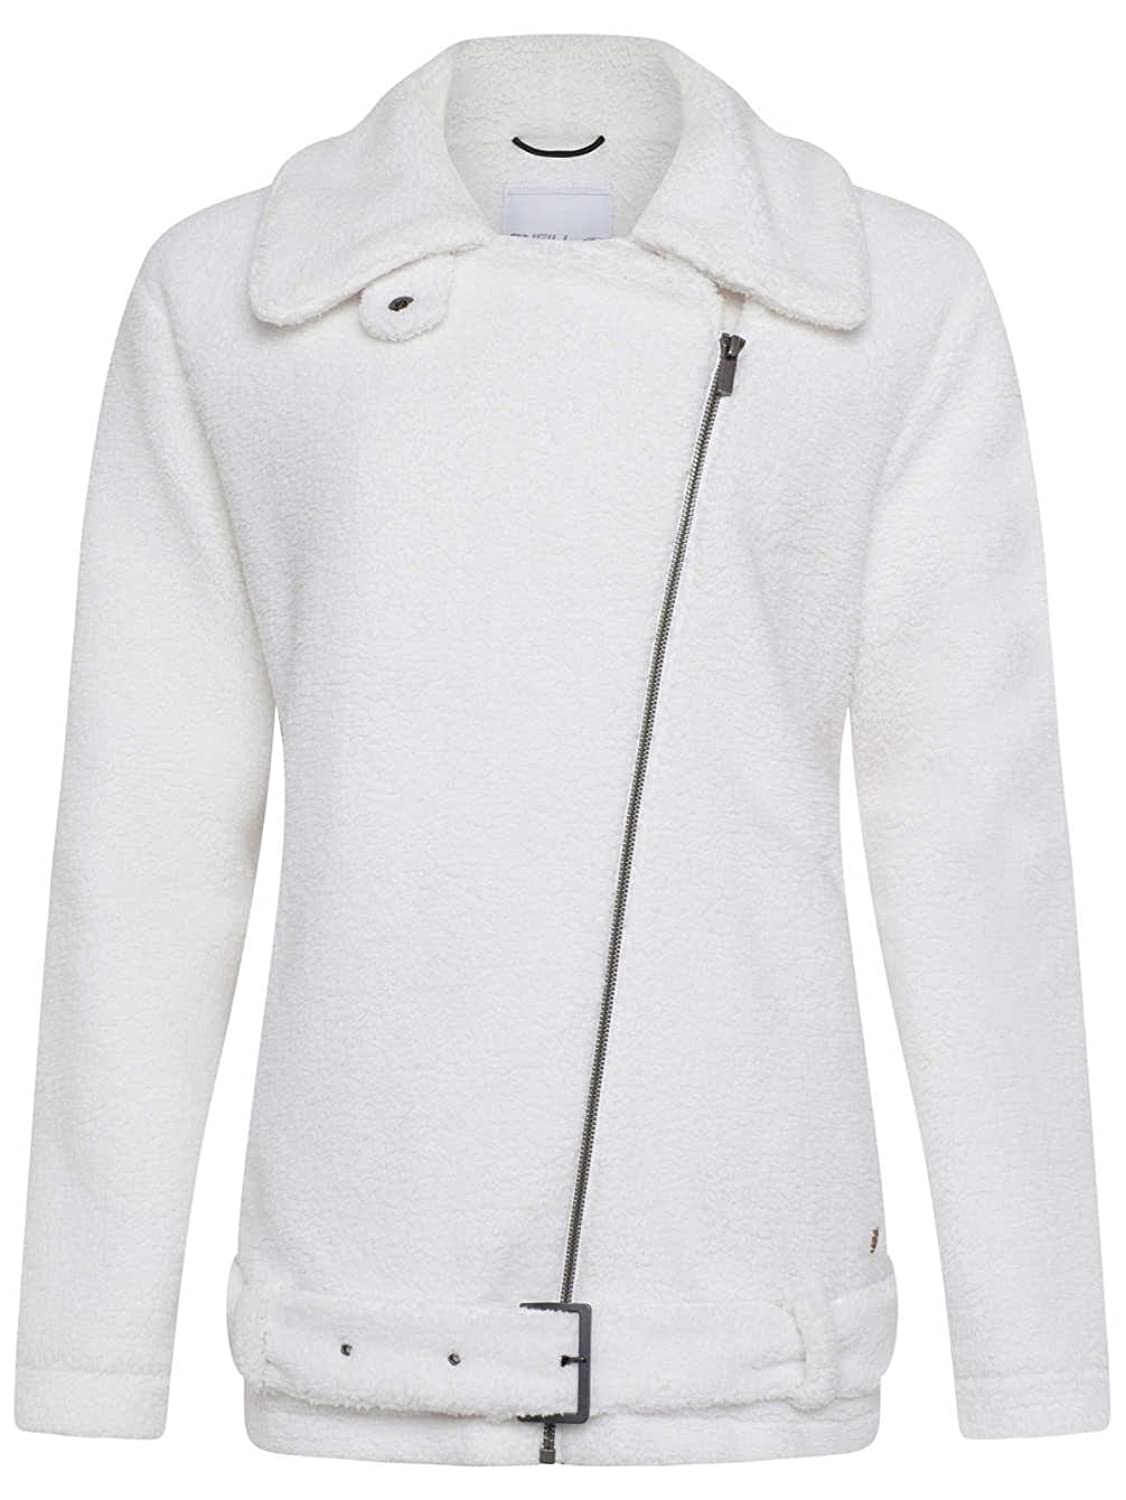 Damen Jacke O'Neill O'Riginals Superfleece Jacket